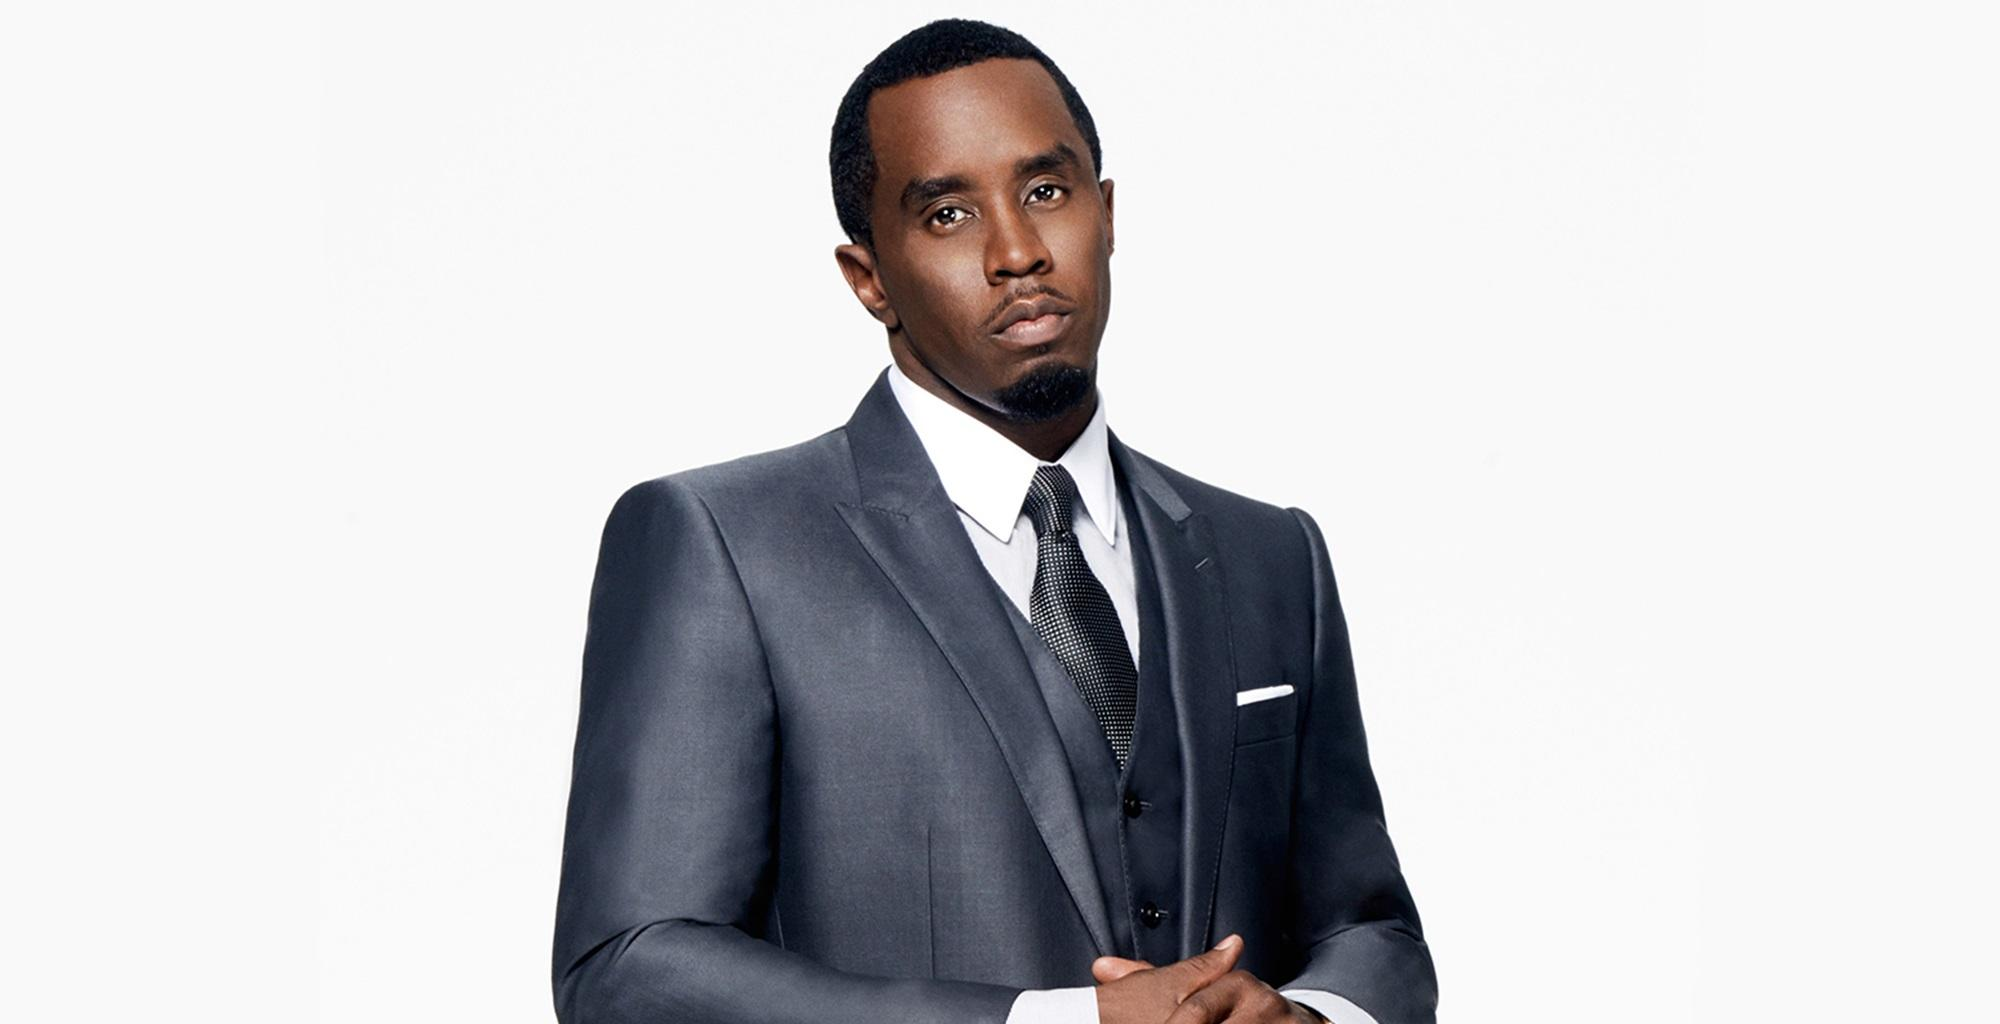 Diddy Announces That He Is Changing His Name Legally To This -- Is There A Secret Meaning?